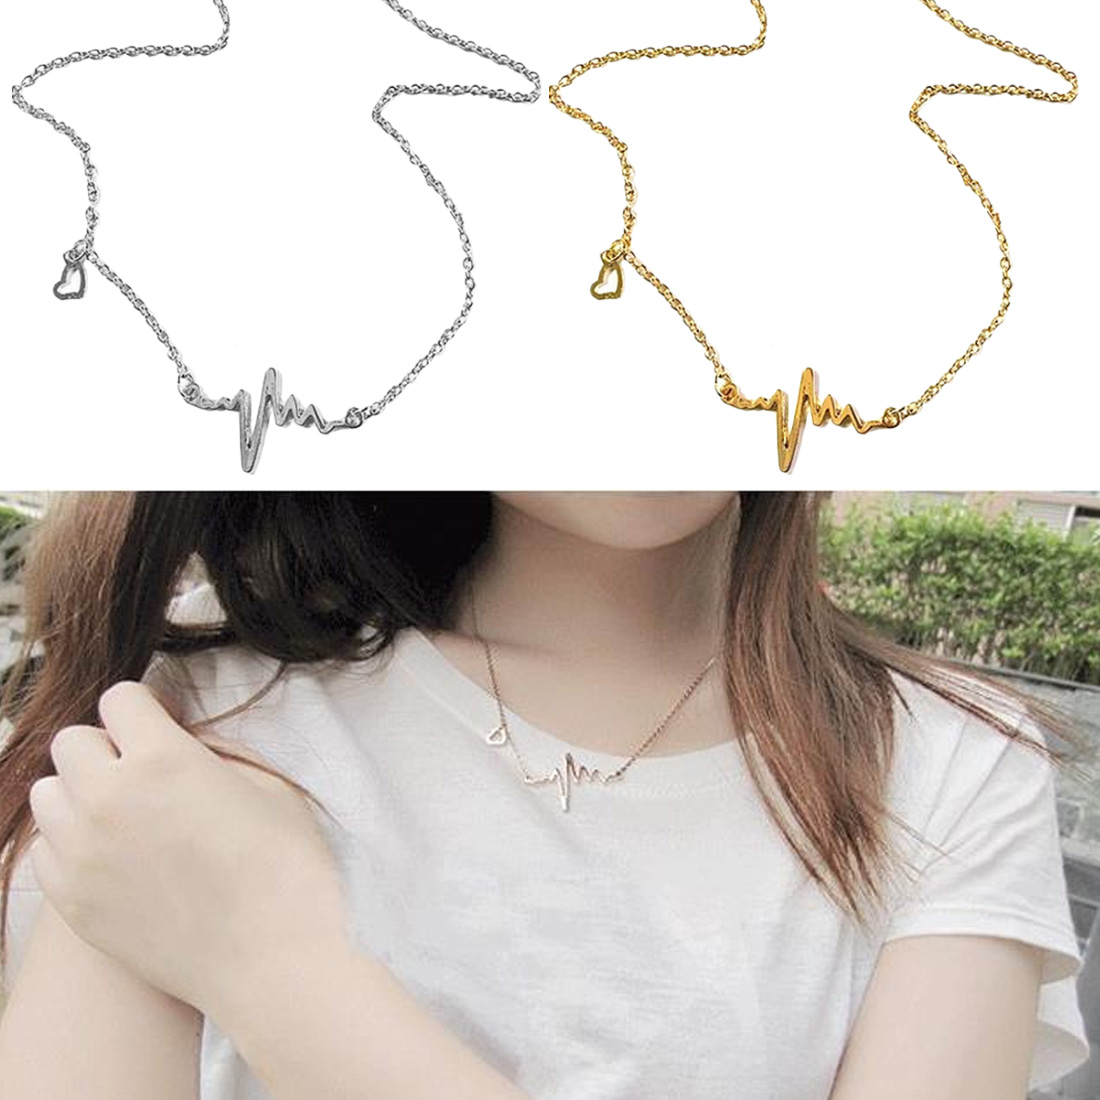 Women Fashion Jewelry Clavicle Chain Cute heartbeat ECG pendant necklace New Simple Popular Electrocardiogram Necklace